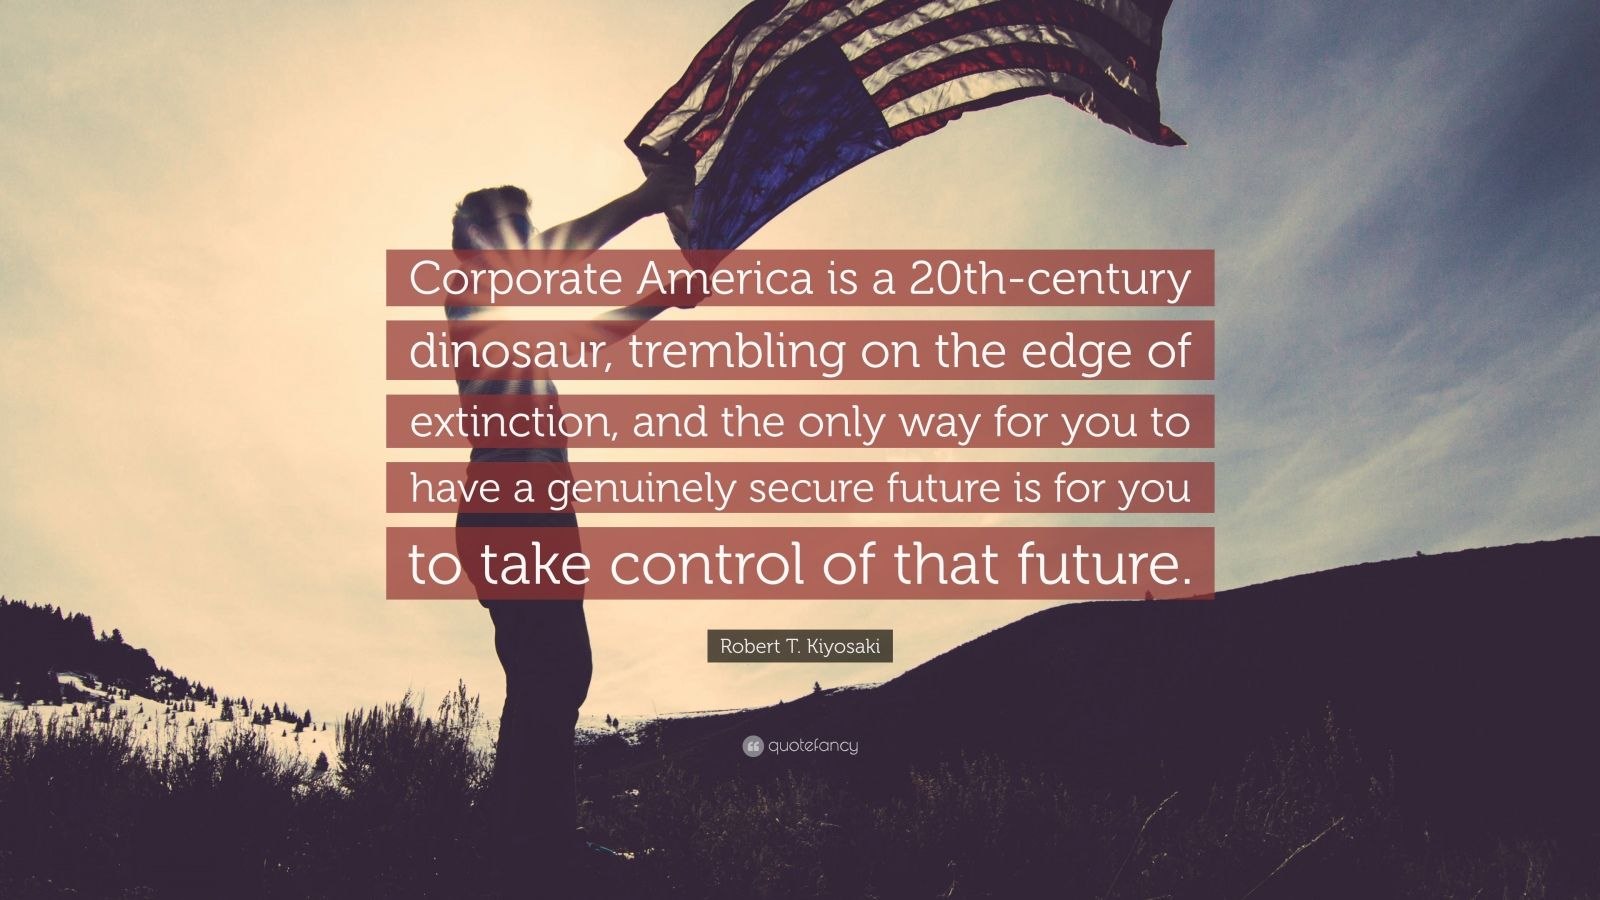 """Robert T. Kiyosaki Quote: """"Corporate America is a 20th-century dinosaur, trembling on the edge of extinction, and the only way for you to have a genuinely secure future is for you to take control of that future."""""""